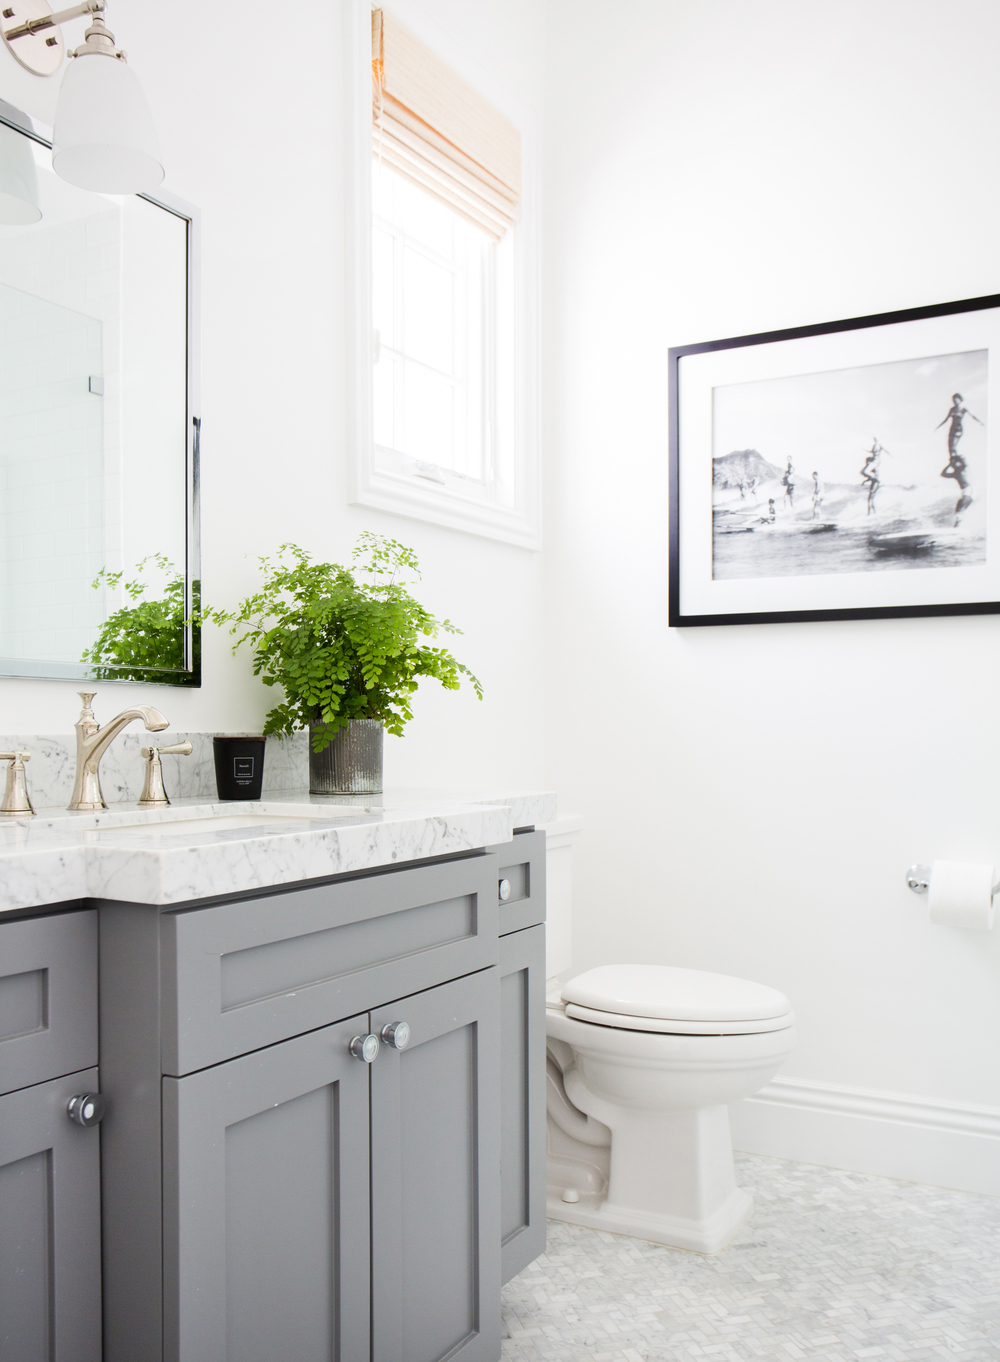 Studio McGee - Pacific Palisades Guest Bathroom